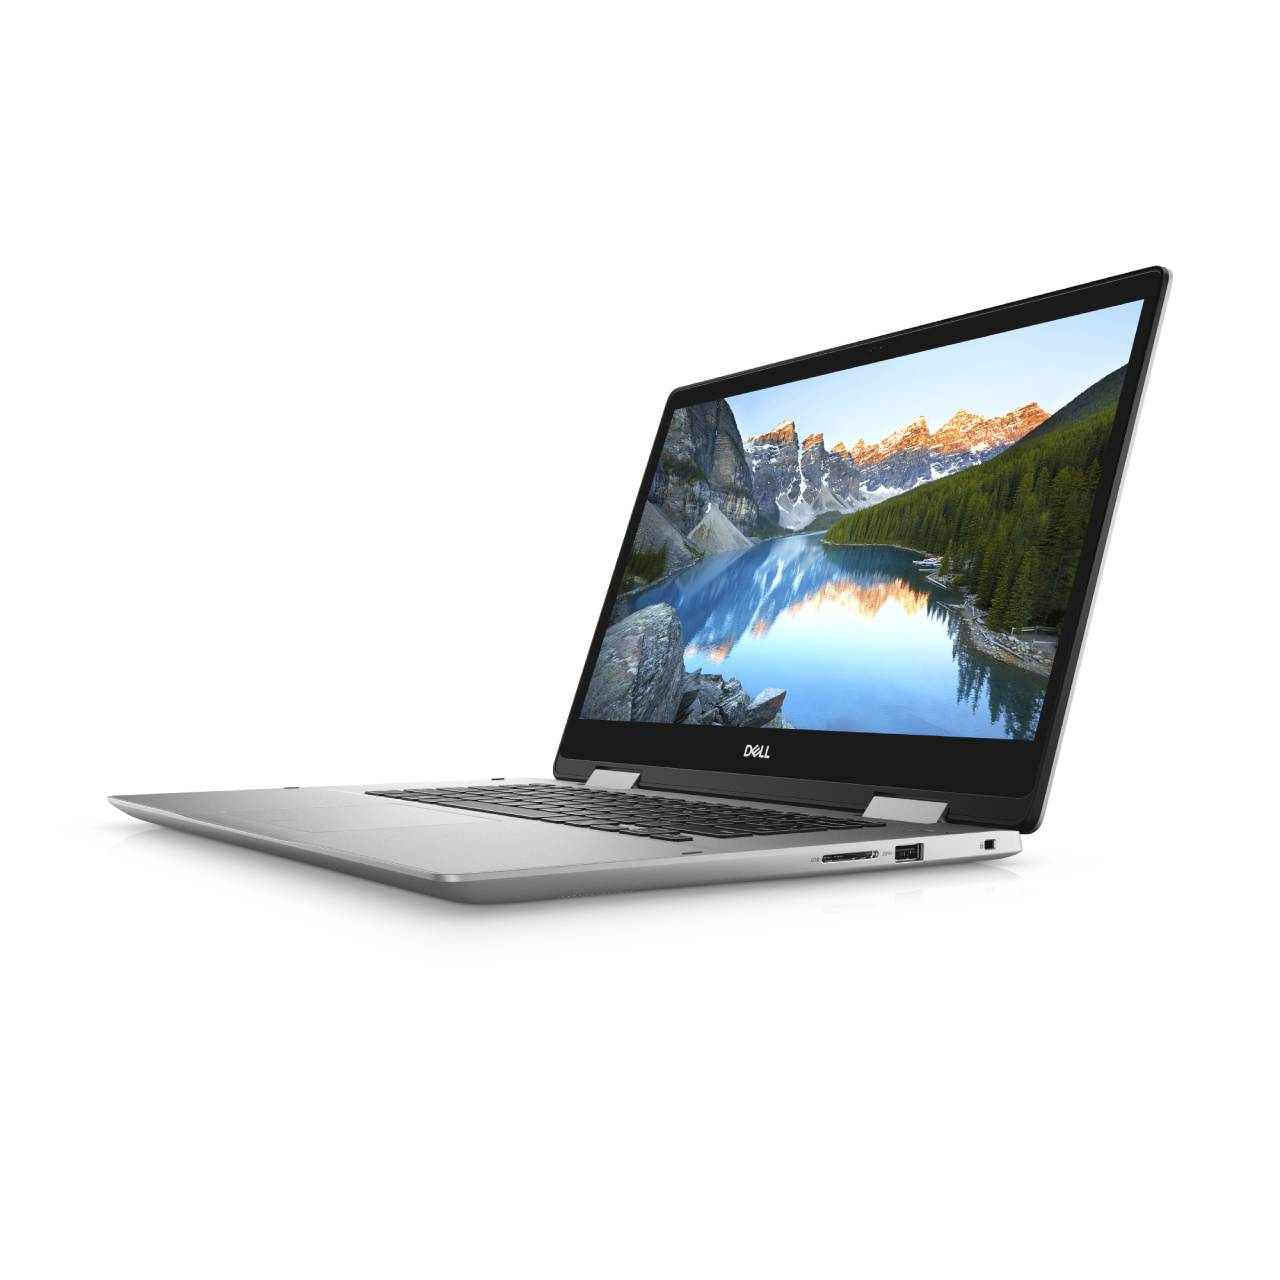 Dell: Dell XPS 13 9360 Laptop 13 3'' Touch Screen Intel i5-8250U